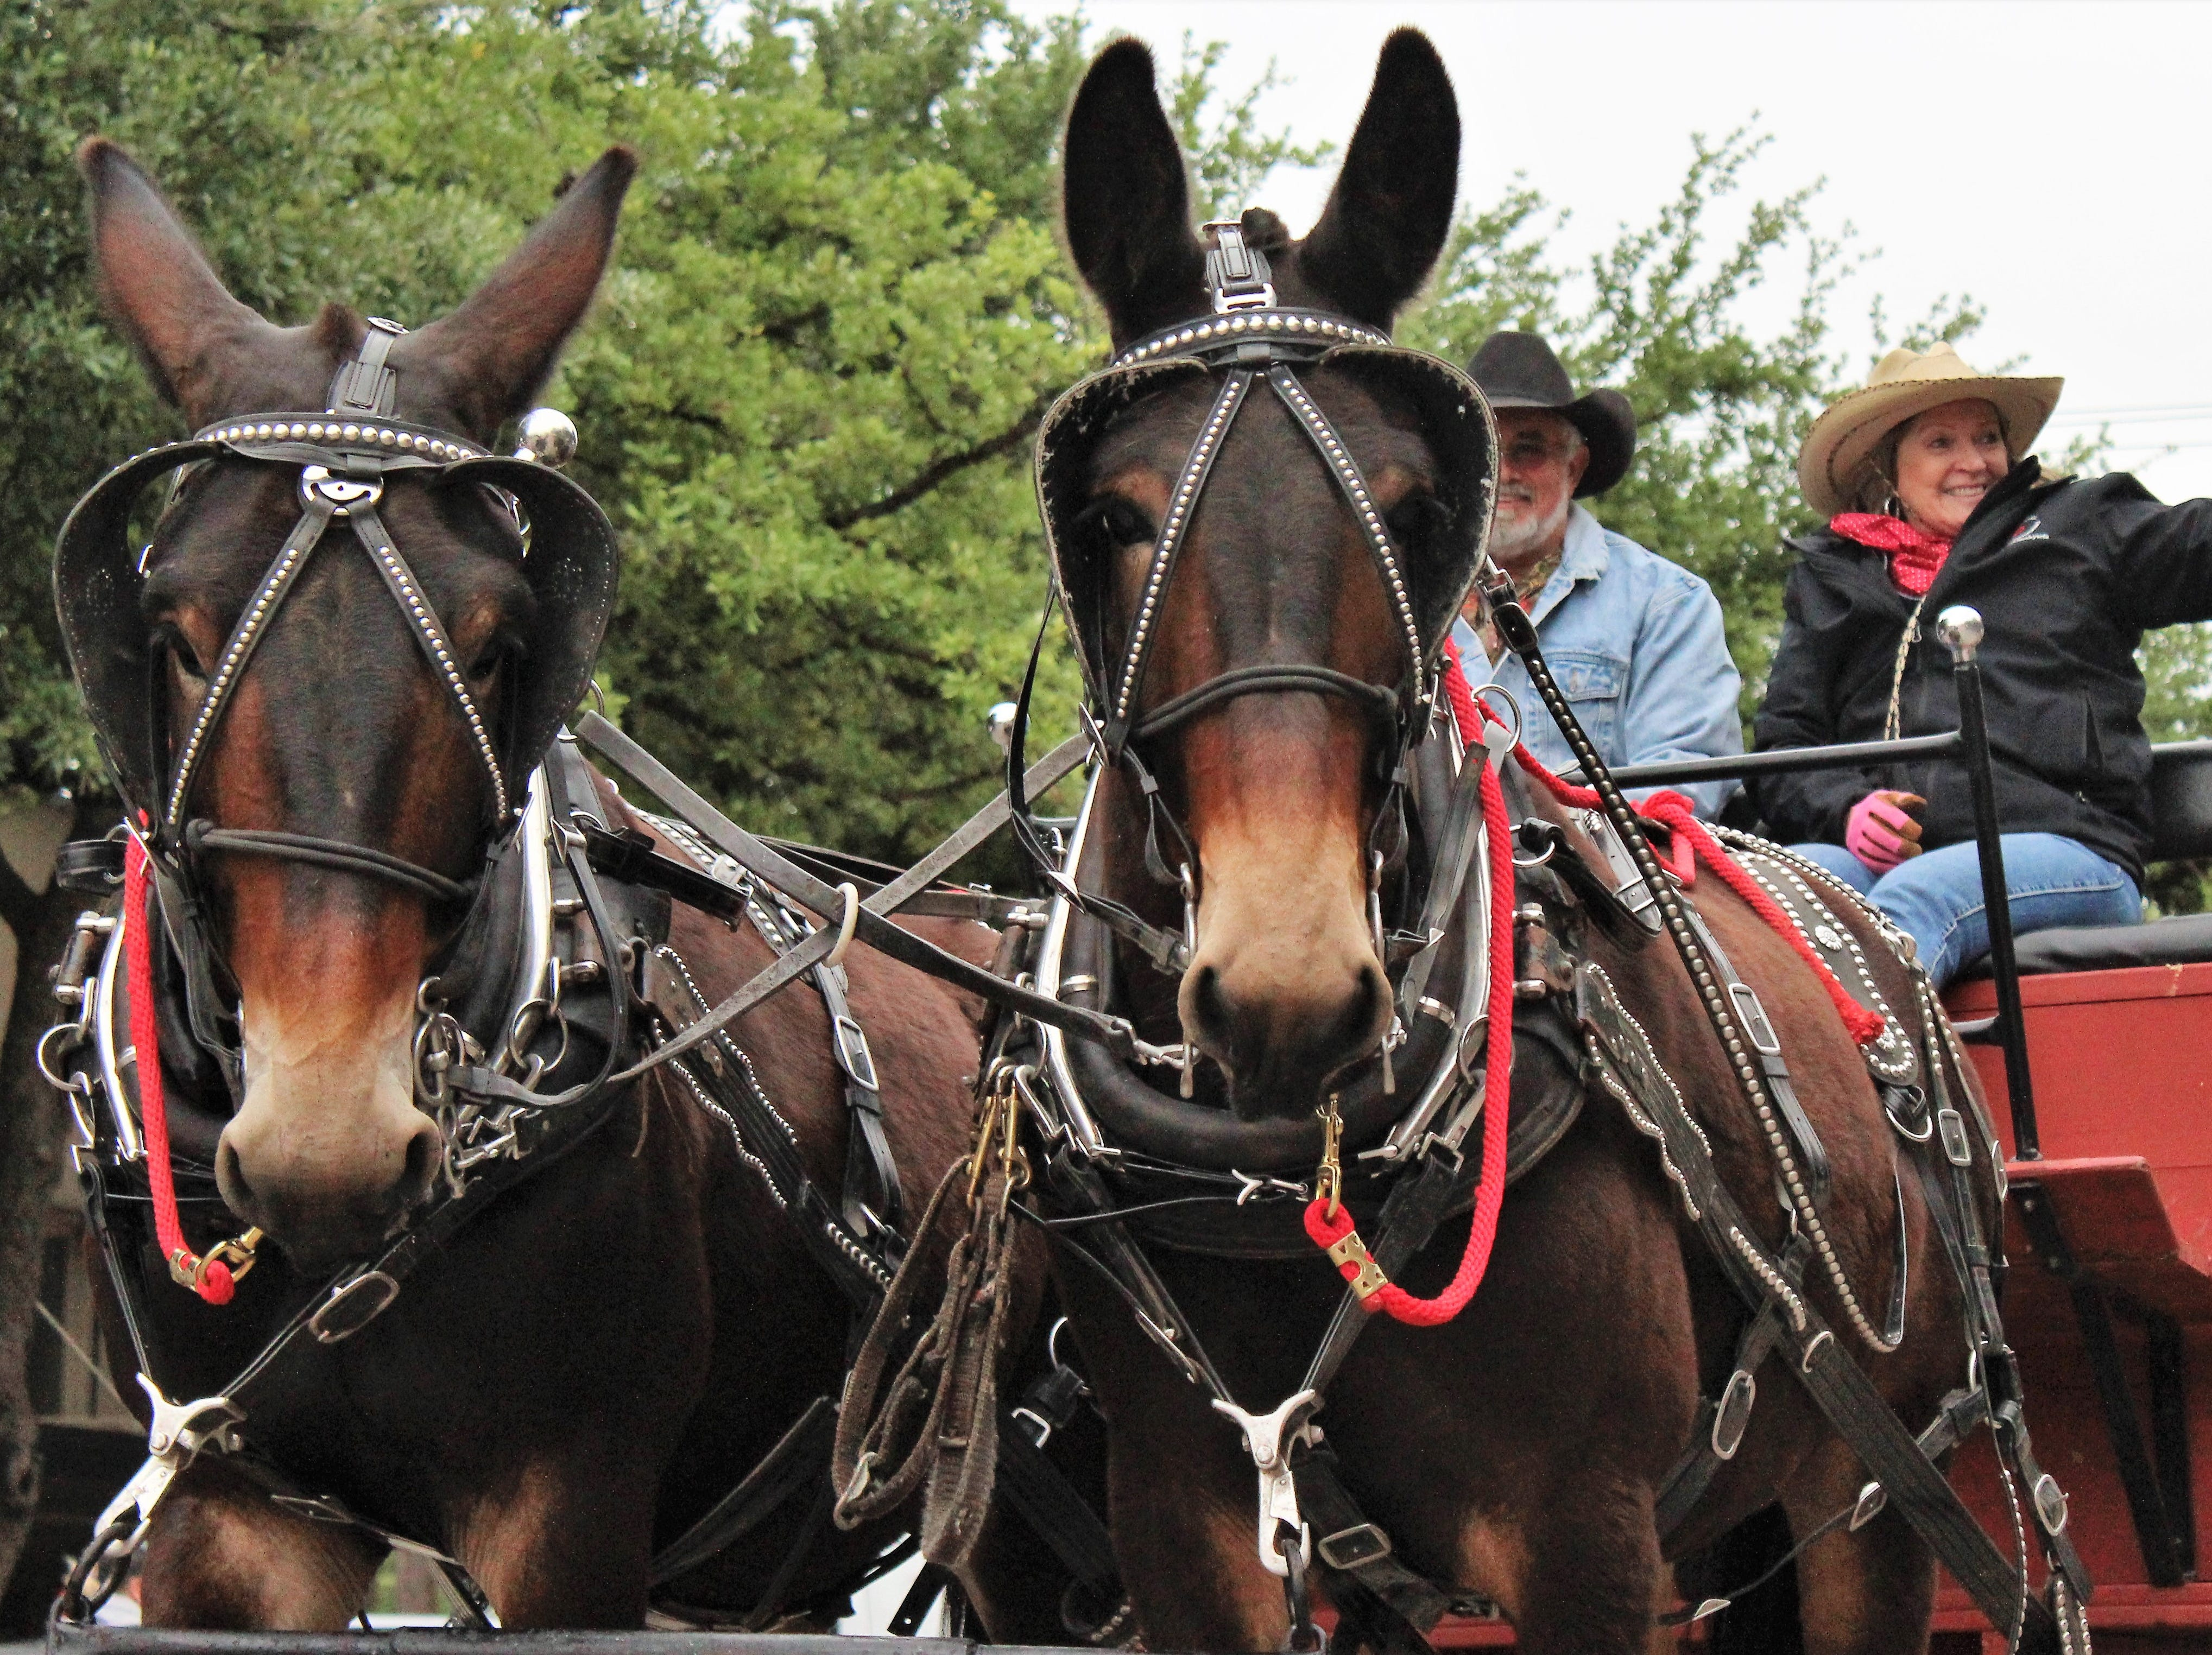 Horse- and mule-drawn wagons and carriages normally aren't seen on Abilene streets anymore, but were plentiful in Thursday evening's Western Heritage Classic parade. May 9, 2019.